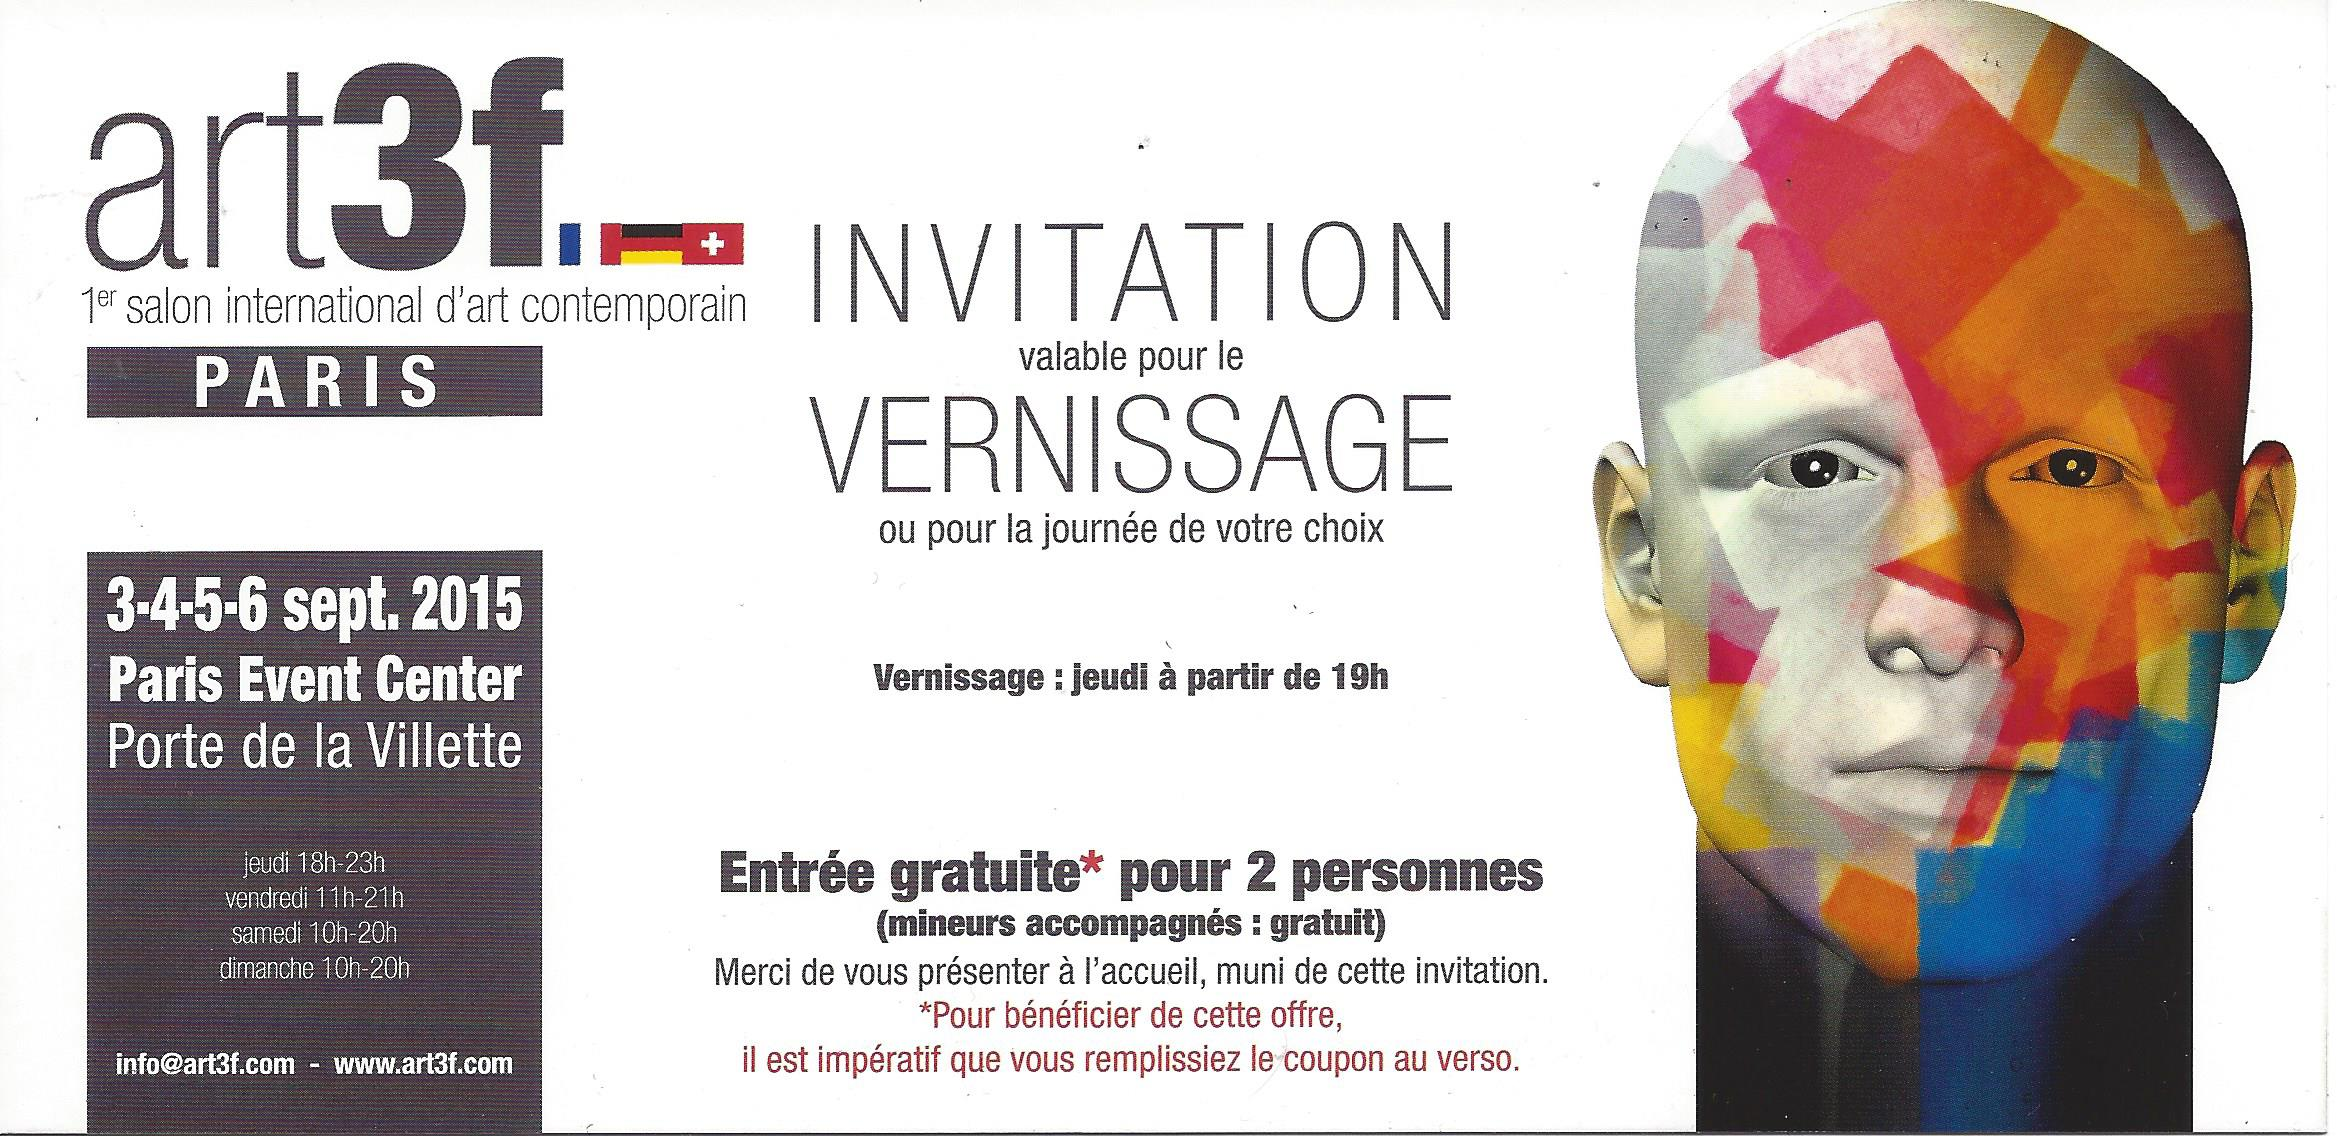 Invitation - art3f